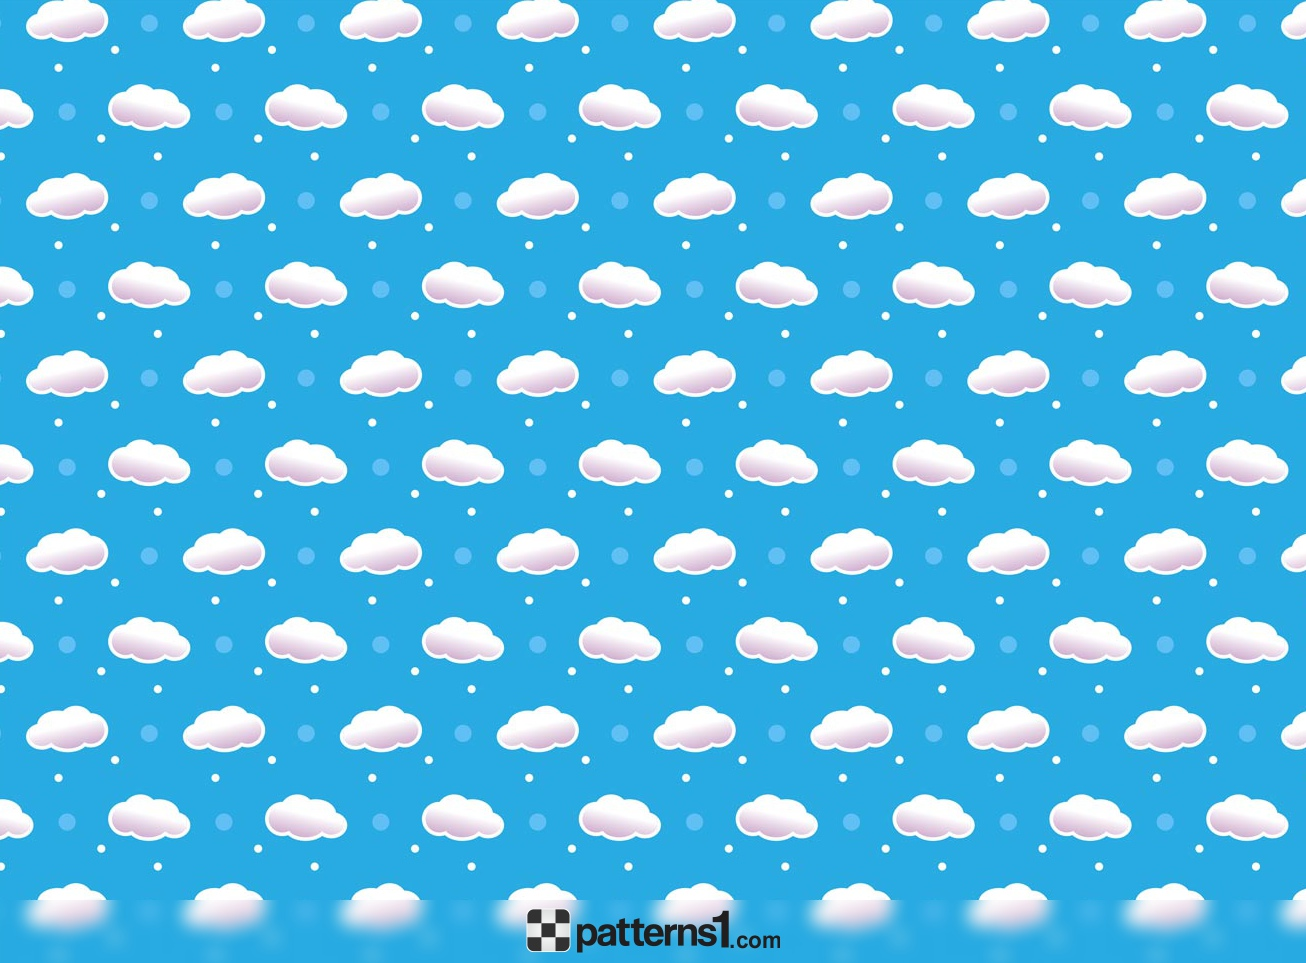 White Clouds Clipart Patterns on Blue Sky.